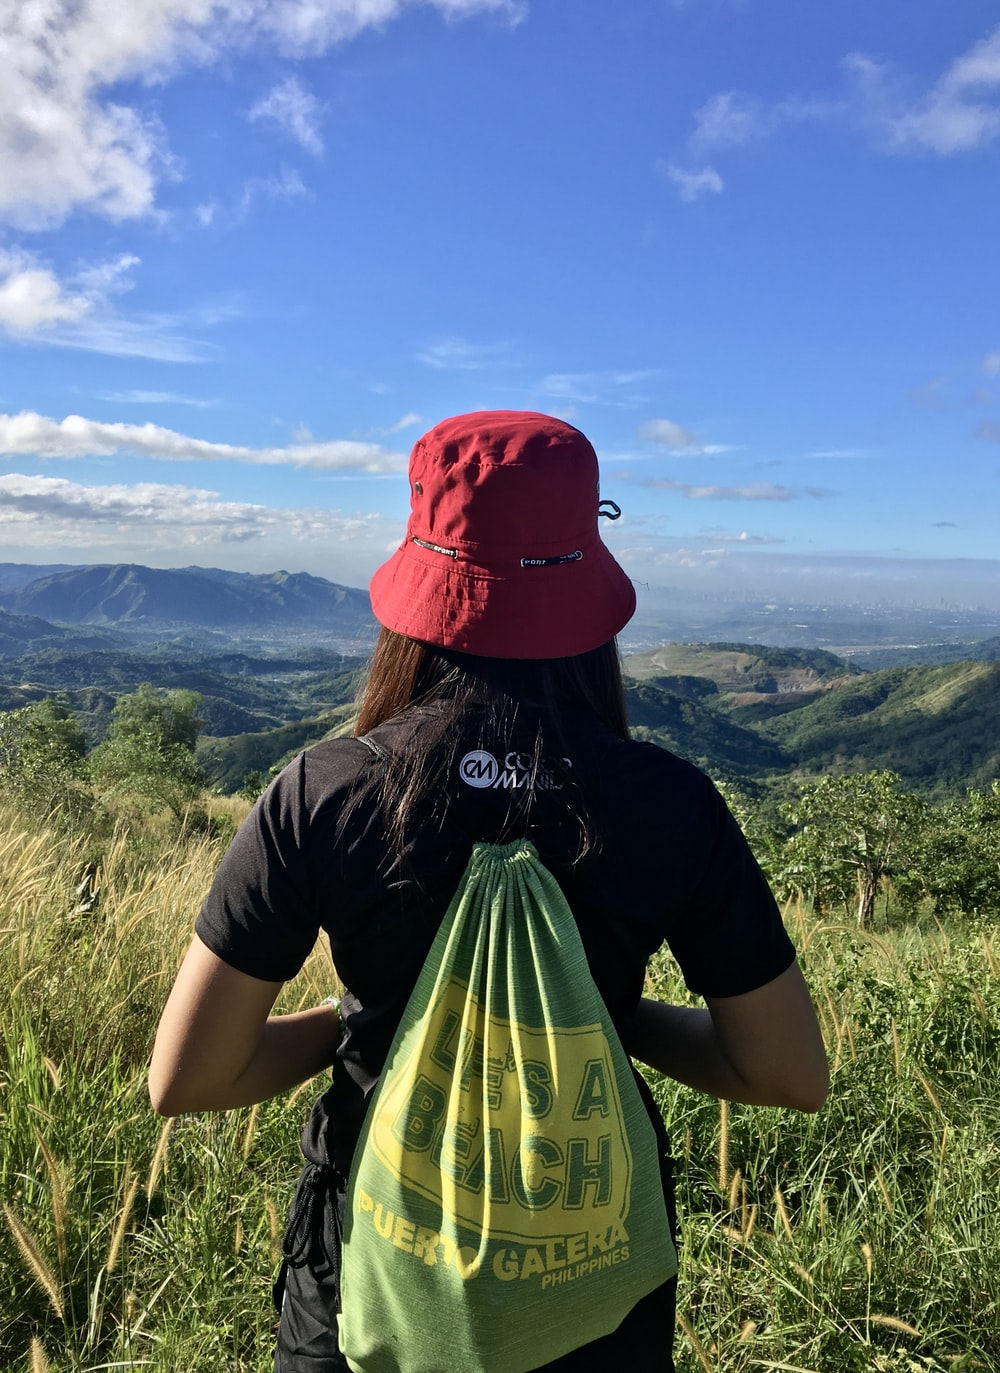 woman with bag facing mountains during daytime